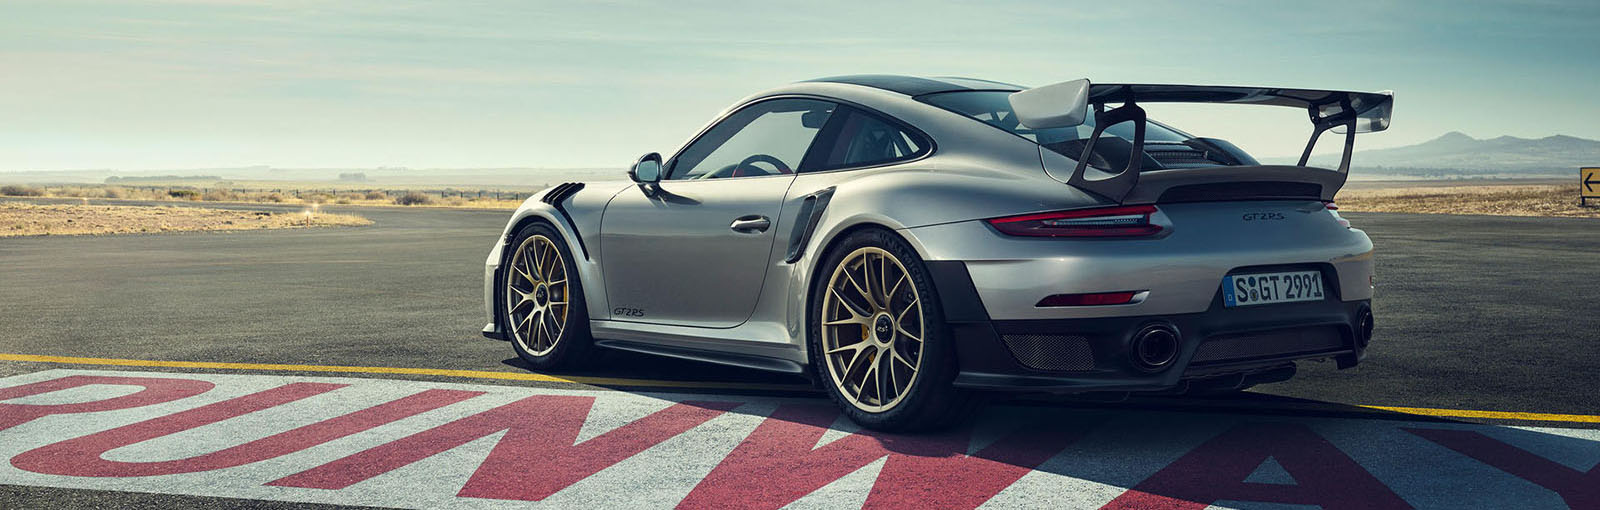 2019 Porsche 911 GT2 RS Appearance Main Img